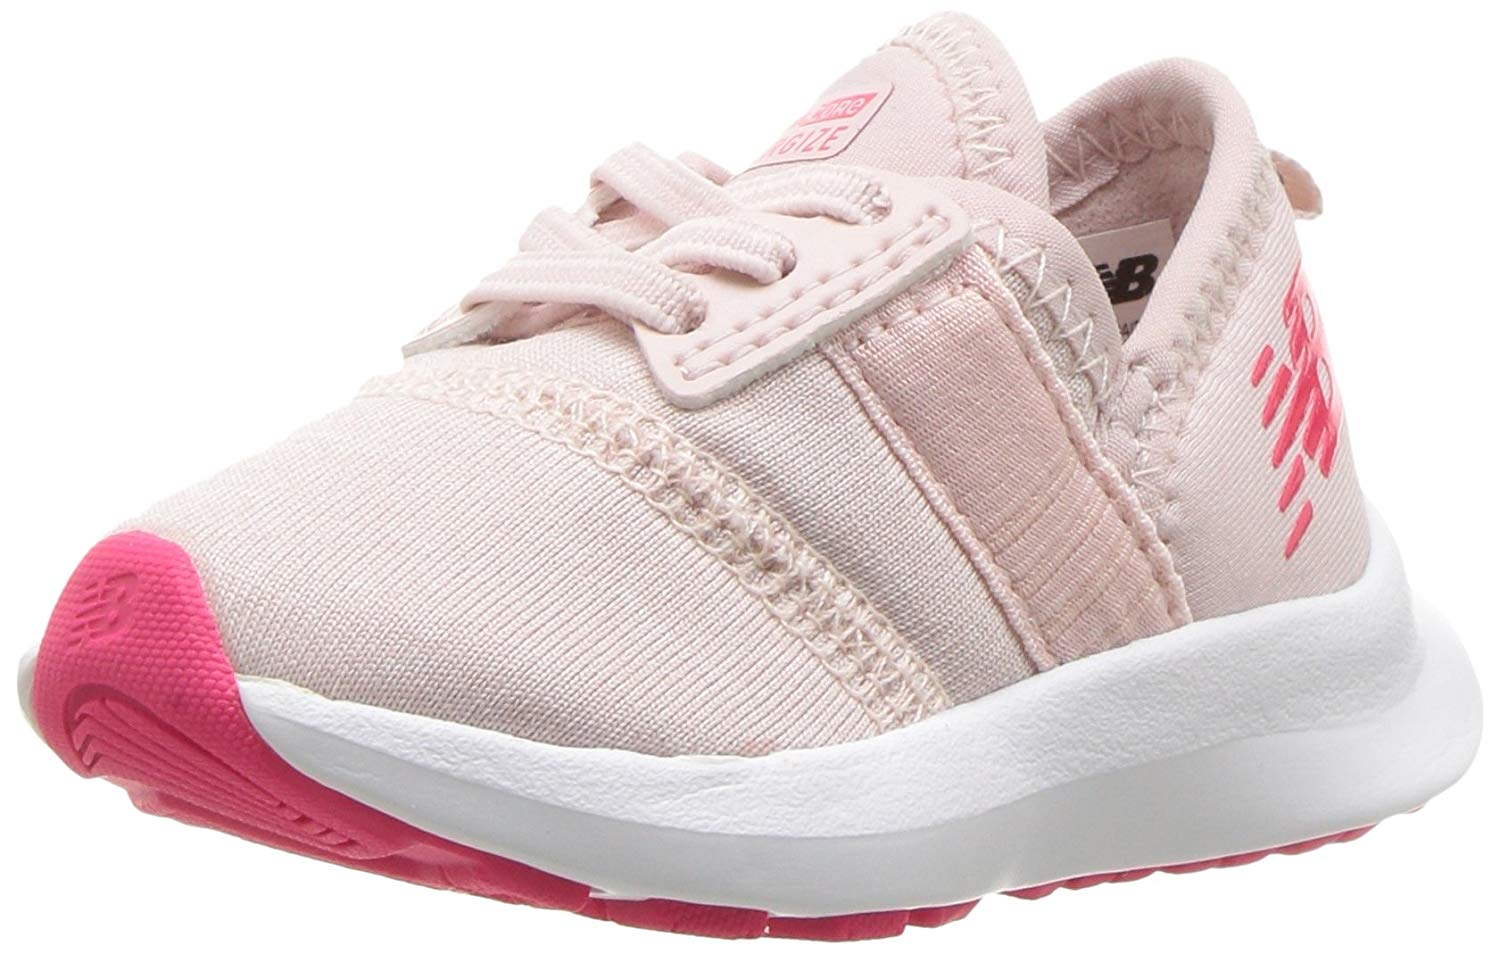 f6a1dc7fa4f4 Kids New Balance Girls Nergize V1 Low Top Lace Up Running Sneaker   eBay